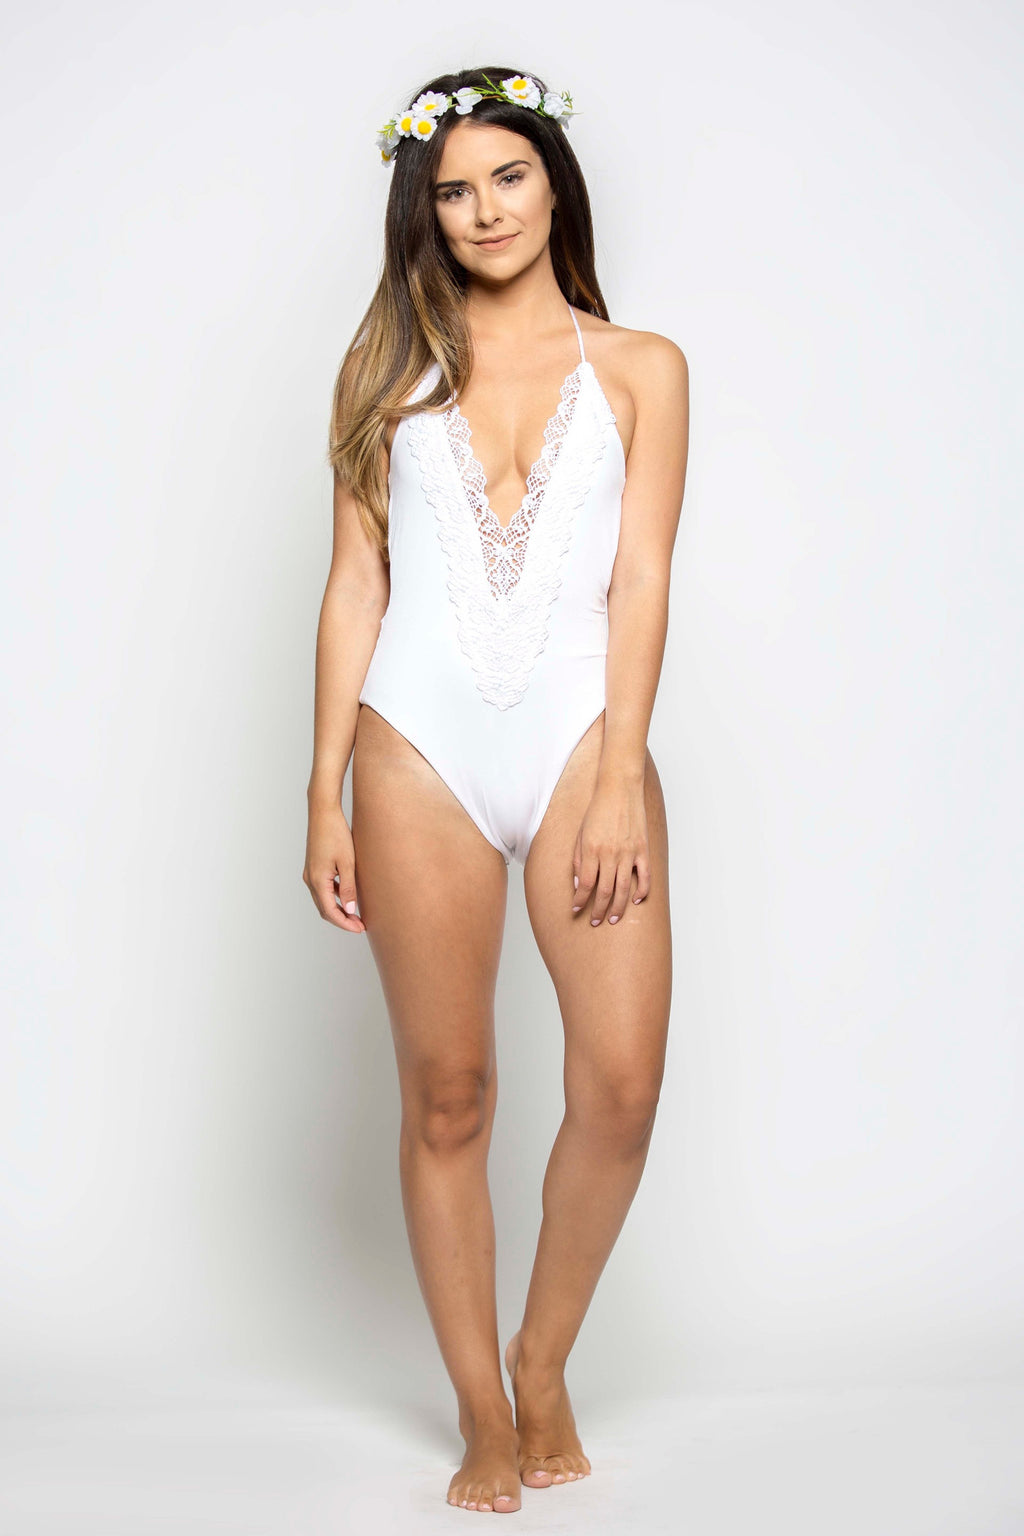 Mirage Halter One Piece in White Diamond - Boho Bum Island Clothing Swimwear Bohemian Boho west palm beach  Miami florida  fall fashion spring fashion online shopping ootd blogger style swim boutique